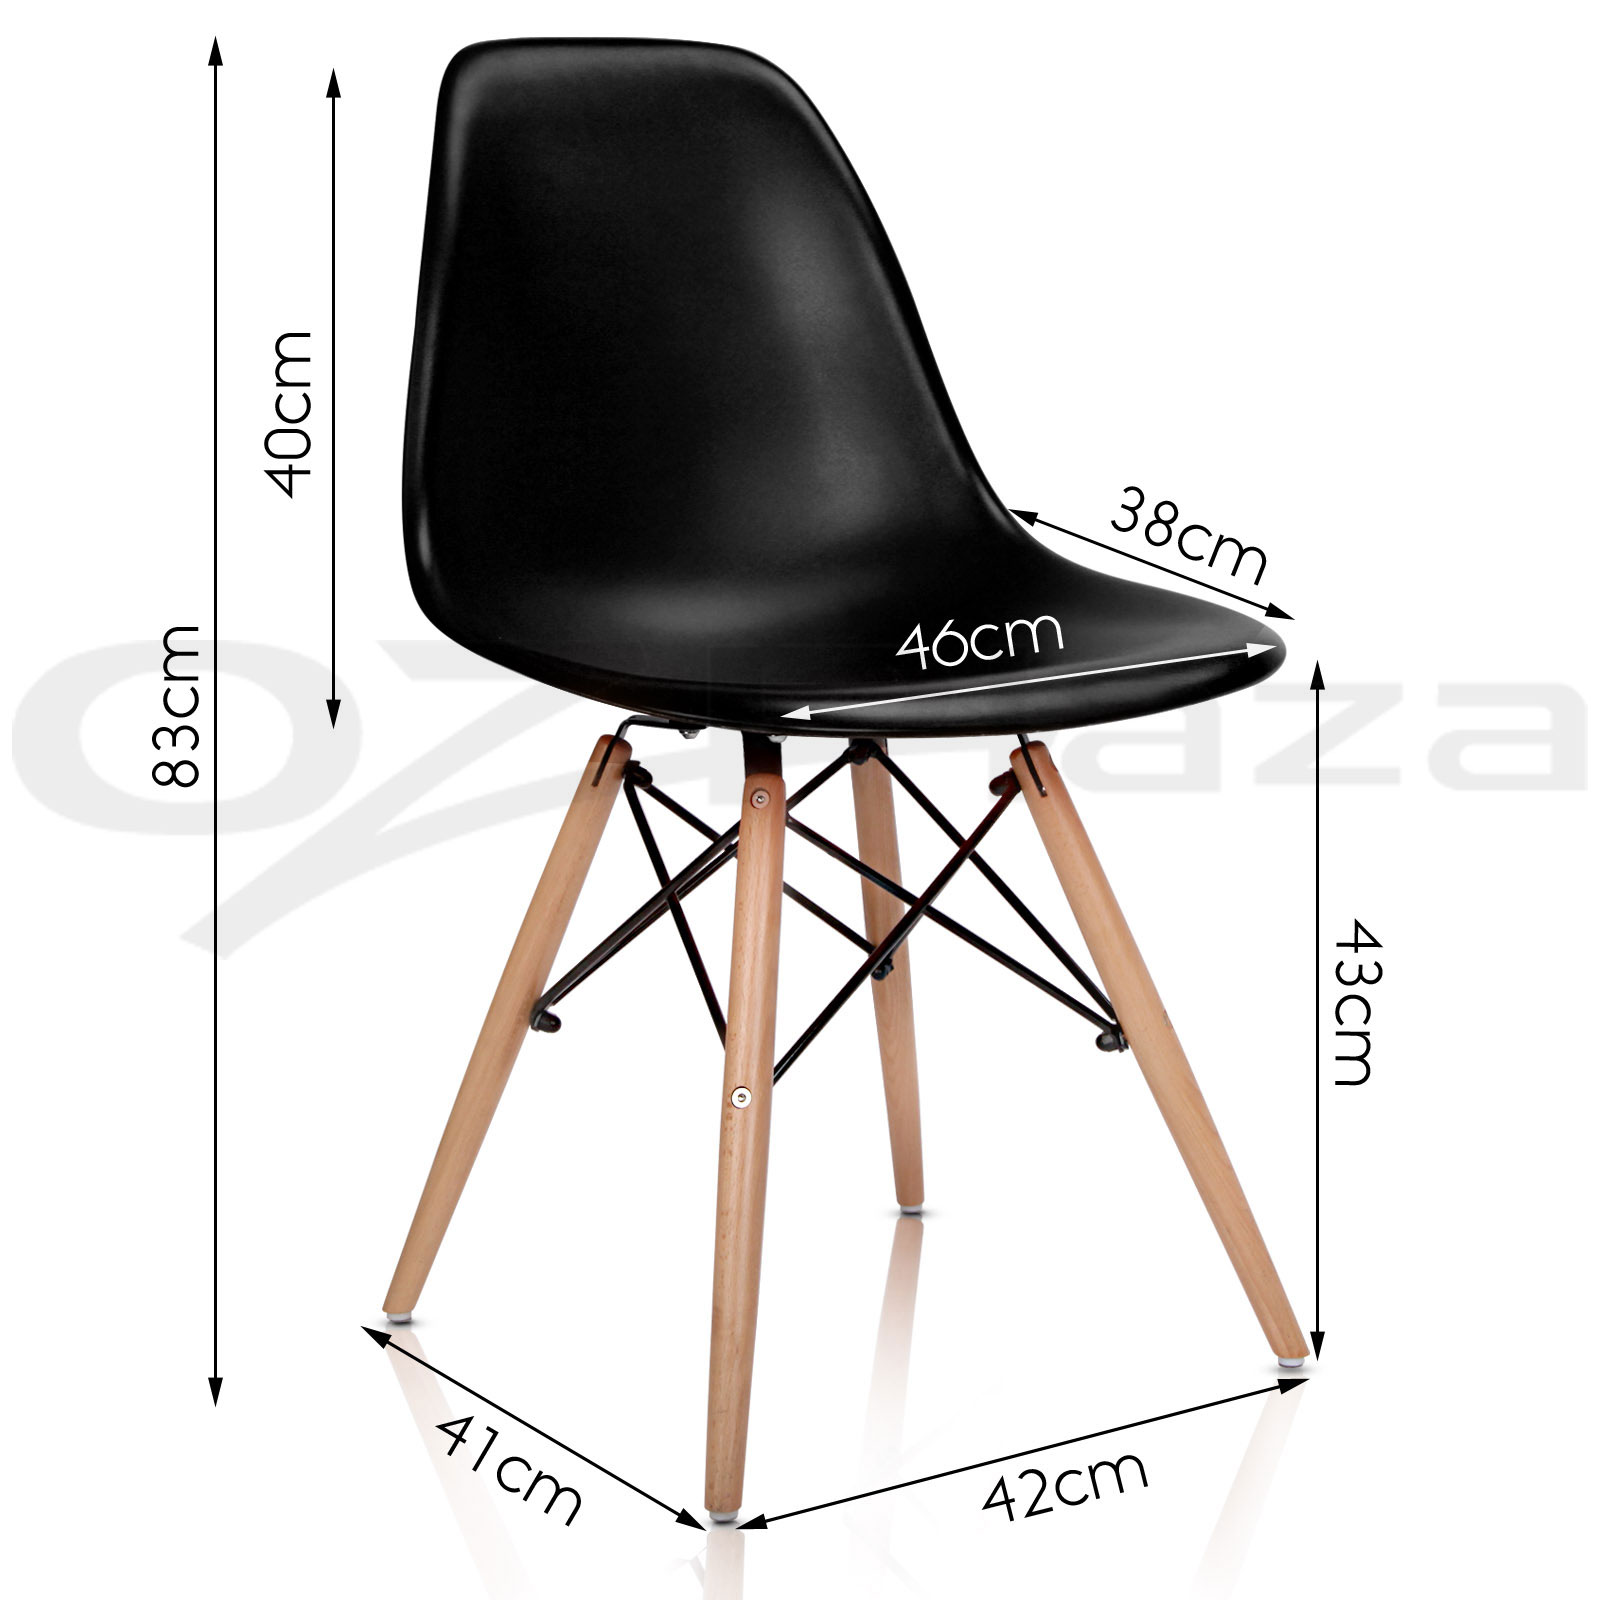 Set of 1x wooden dining table 4x eames replica dsw retro for Eames stuhl replica deutschland